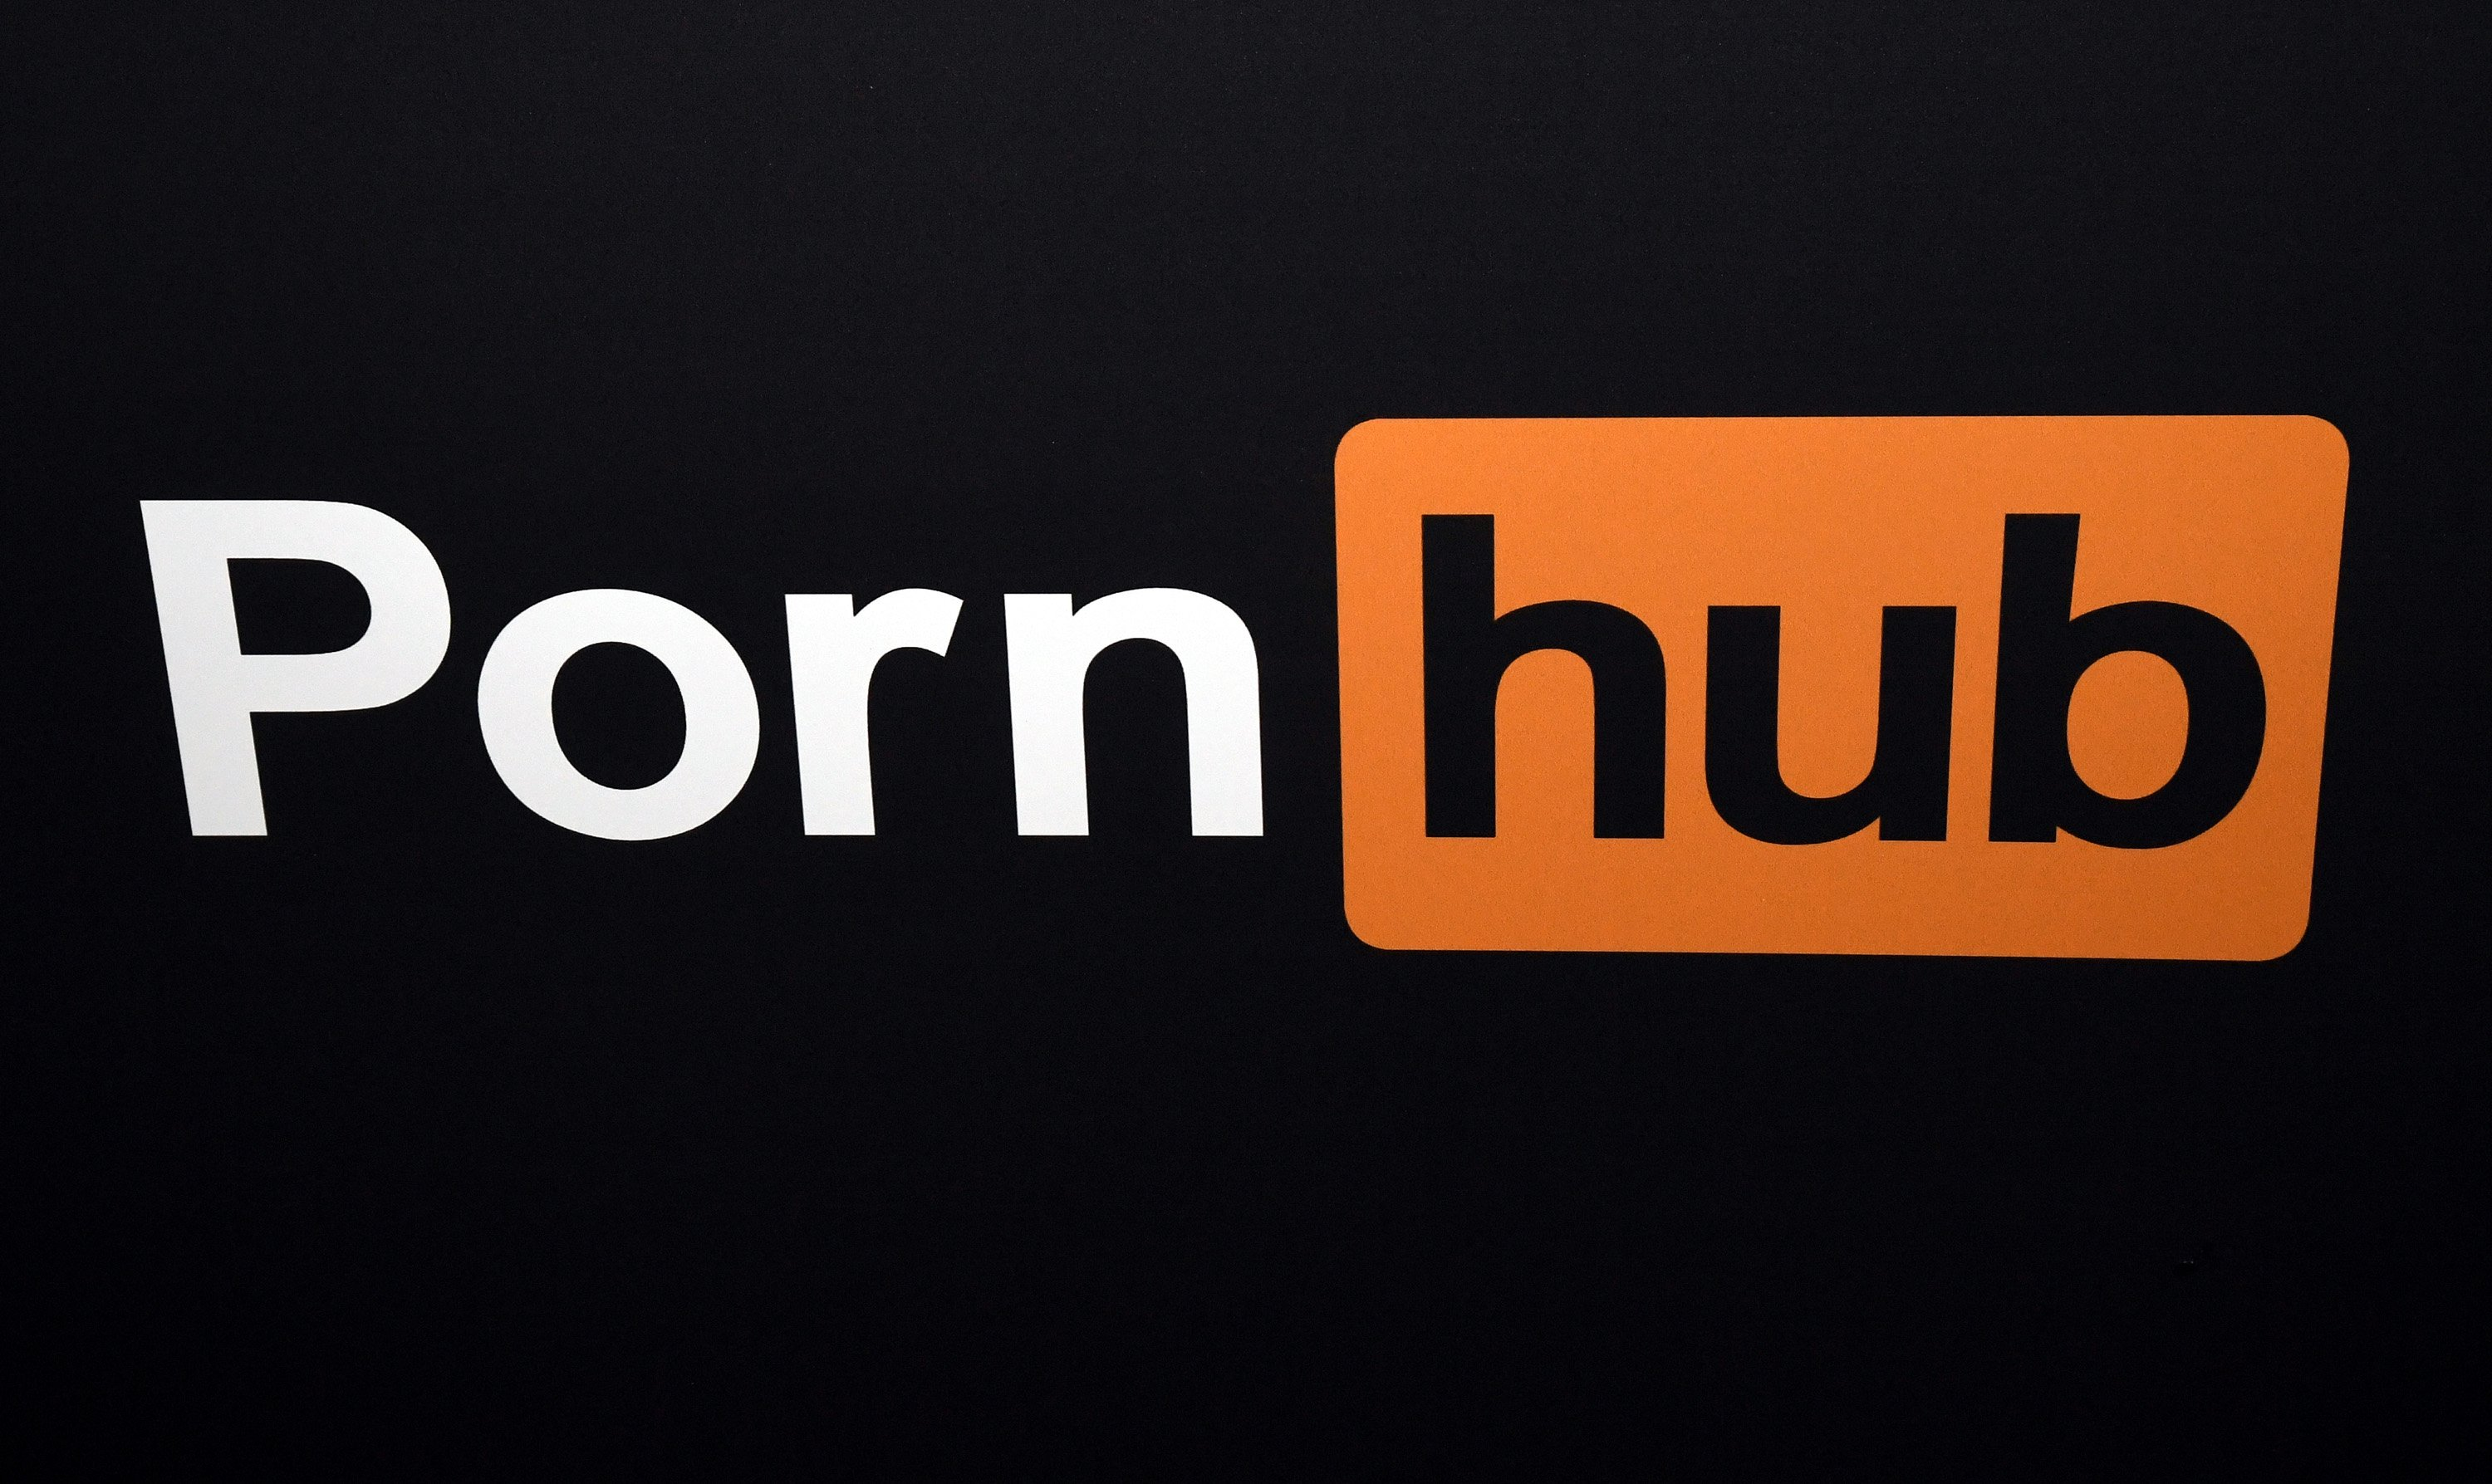 Pornhub logo is displayed at the company's booth at the 2018 AVN Adult Entertainment Expo at the Hard Rock Hotel & Casino on January 24, 2018 in Las Vegas, Nevada. (Photo by Ethan Miller/Getty Images)